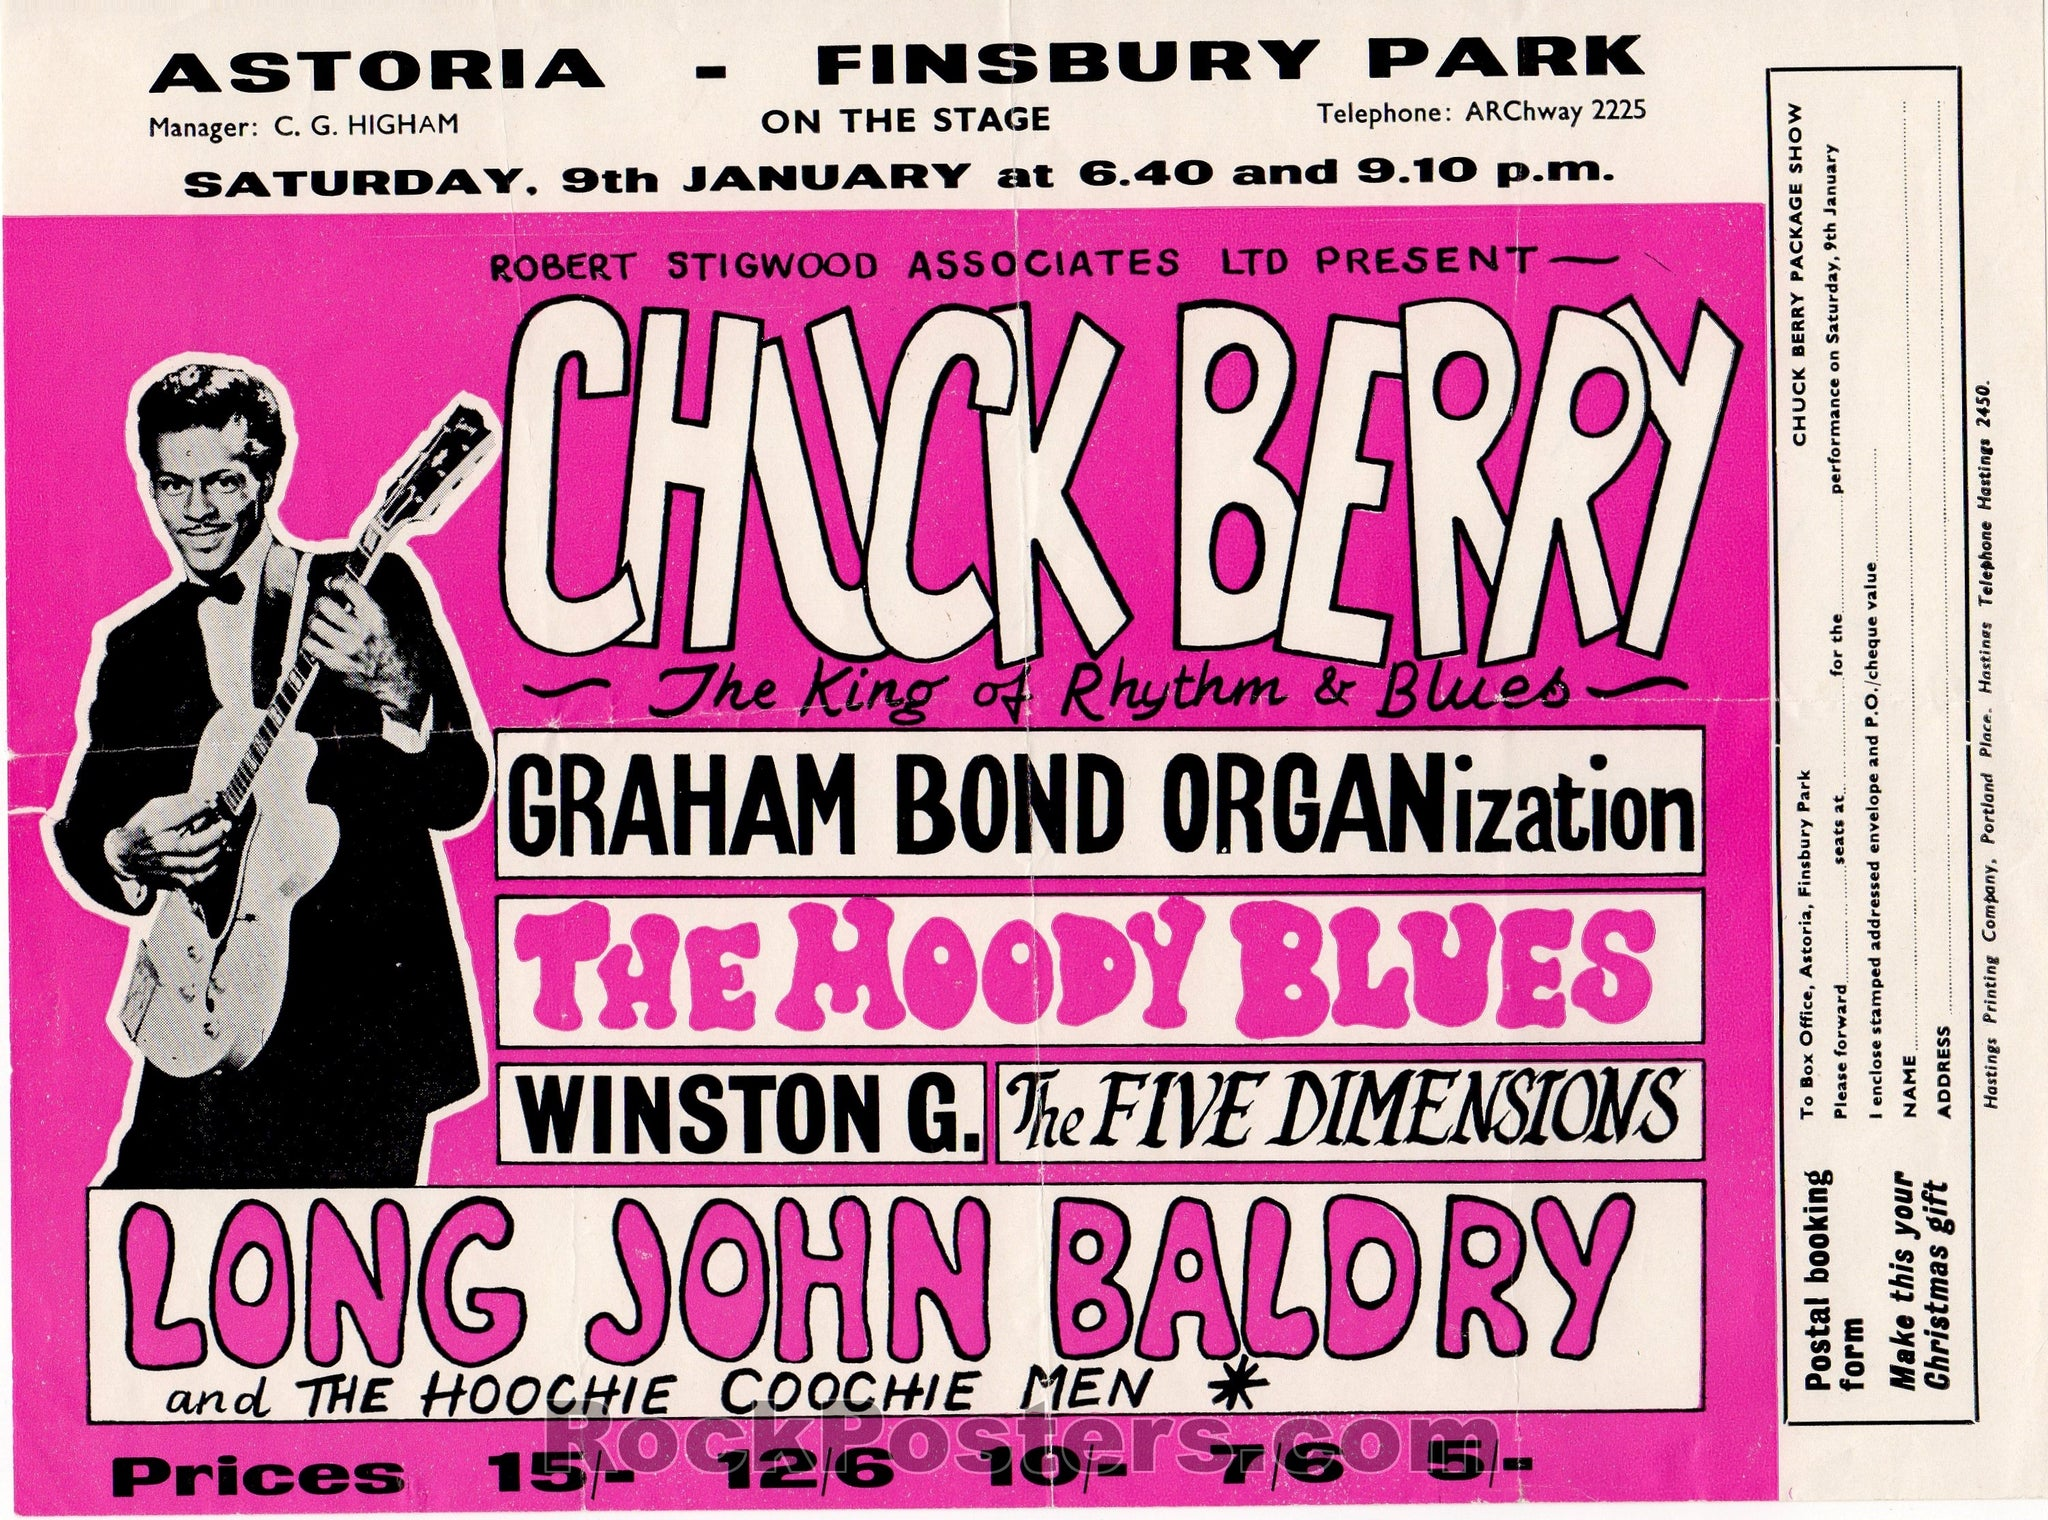 AUCTION - Chuck Berry - Moody Blues 1965 Original Handbill London - England - Condition - Excellent